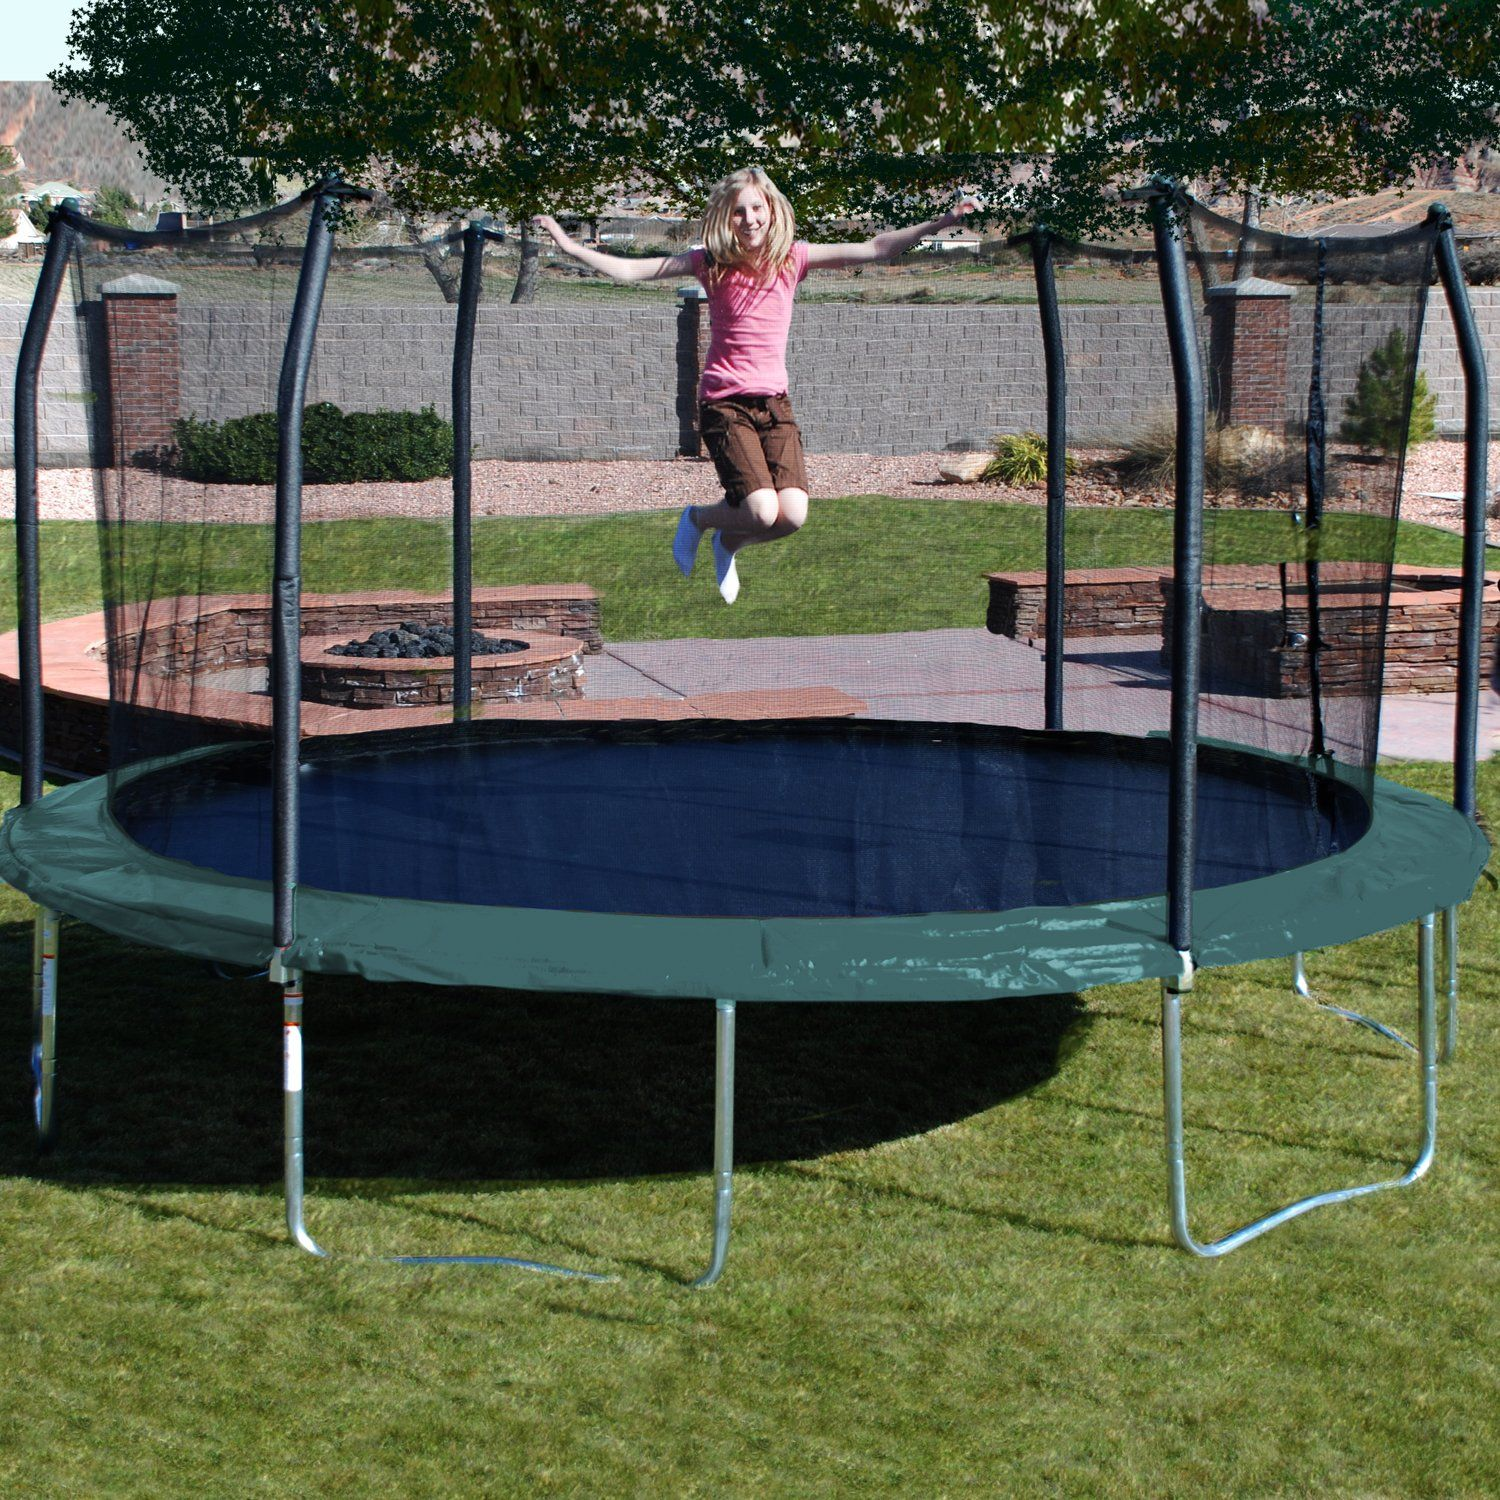 Have To Have It Skywalker Trampolines 17 Ft Oval Trampoline With Spring Pad 529 98 Backyard Trampoline Oval Trampoline Best Trampoline